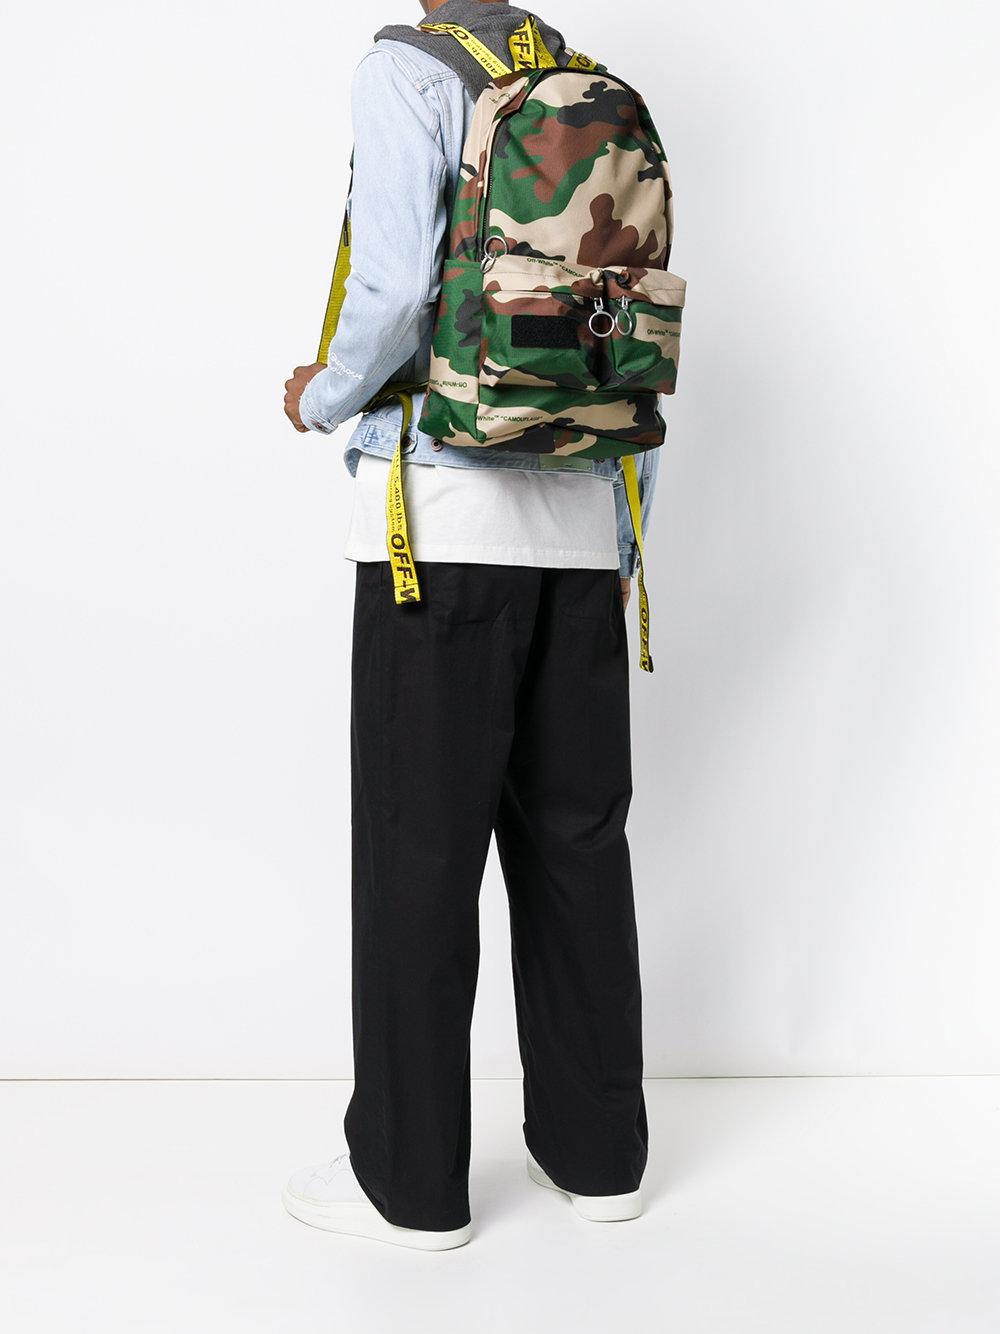 Lyst - Off-White C/O Virgil Abloh Camouflage Backpack in Green for Men